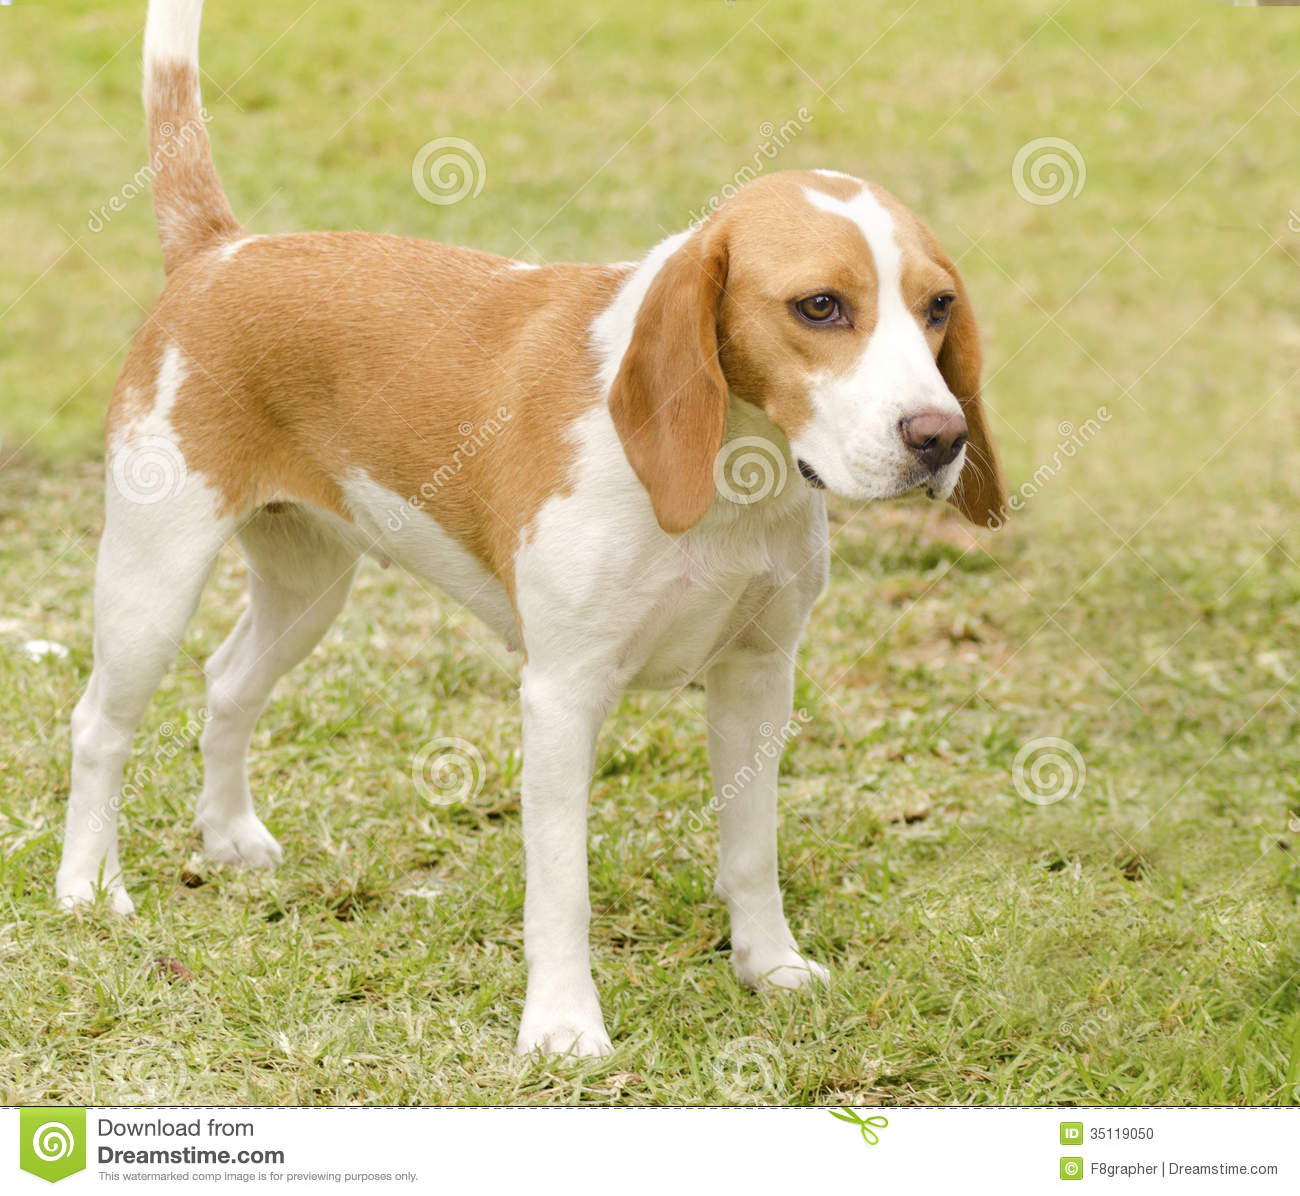 Istrian Shorthaired Hound Dog: Stock Istrian Shorthaired Hound Young Beautiful White Orange Puppy Dog Standing Lawn Short Haired Breed